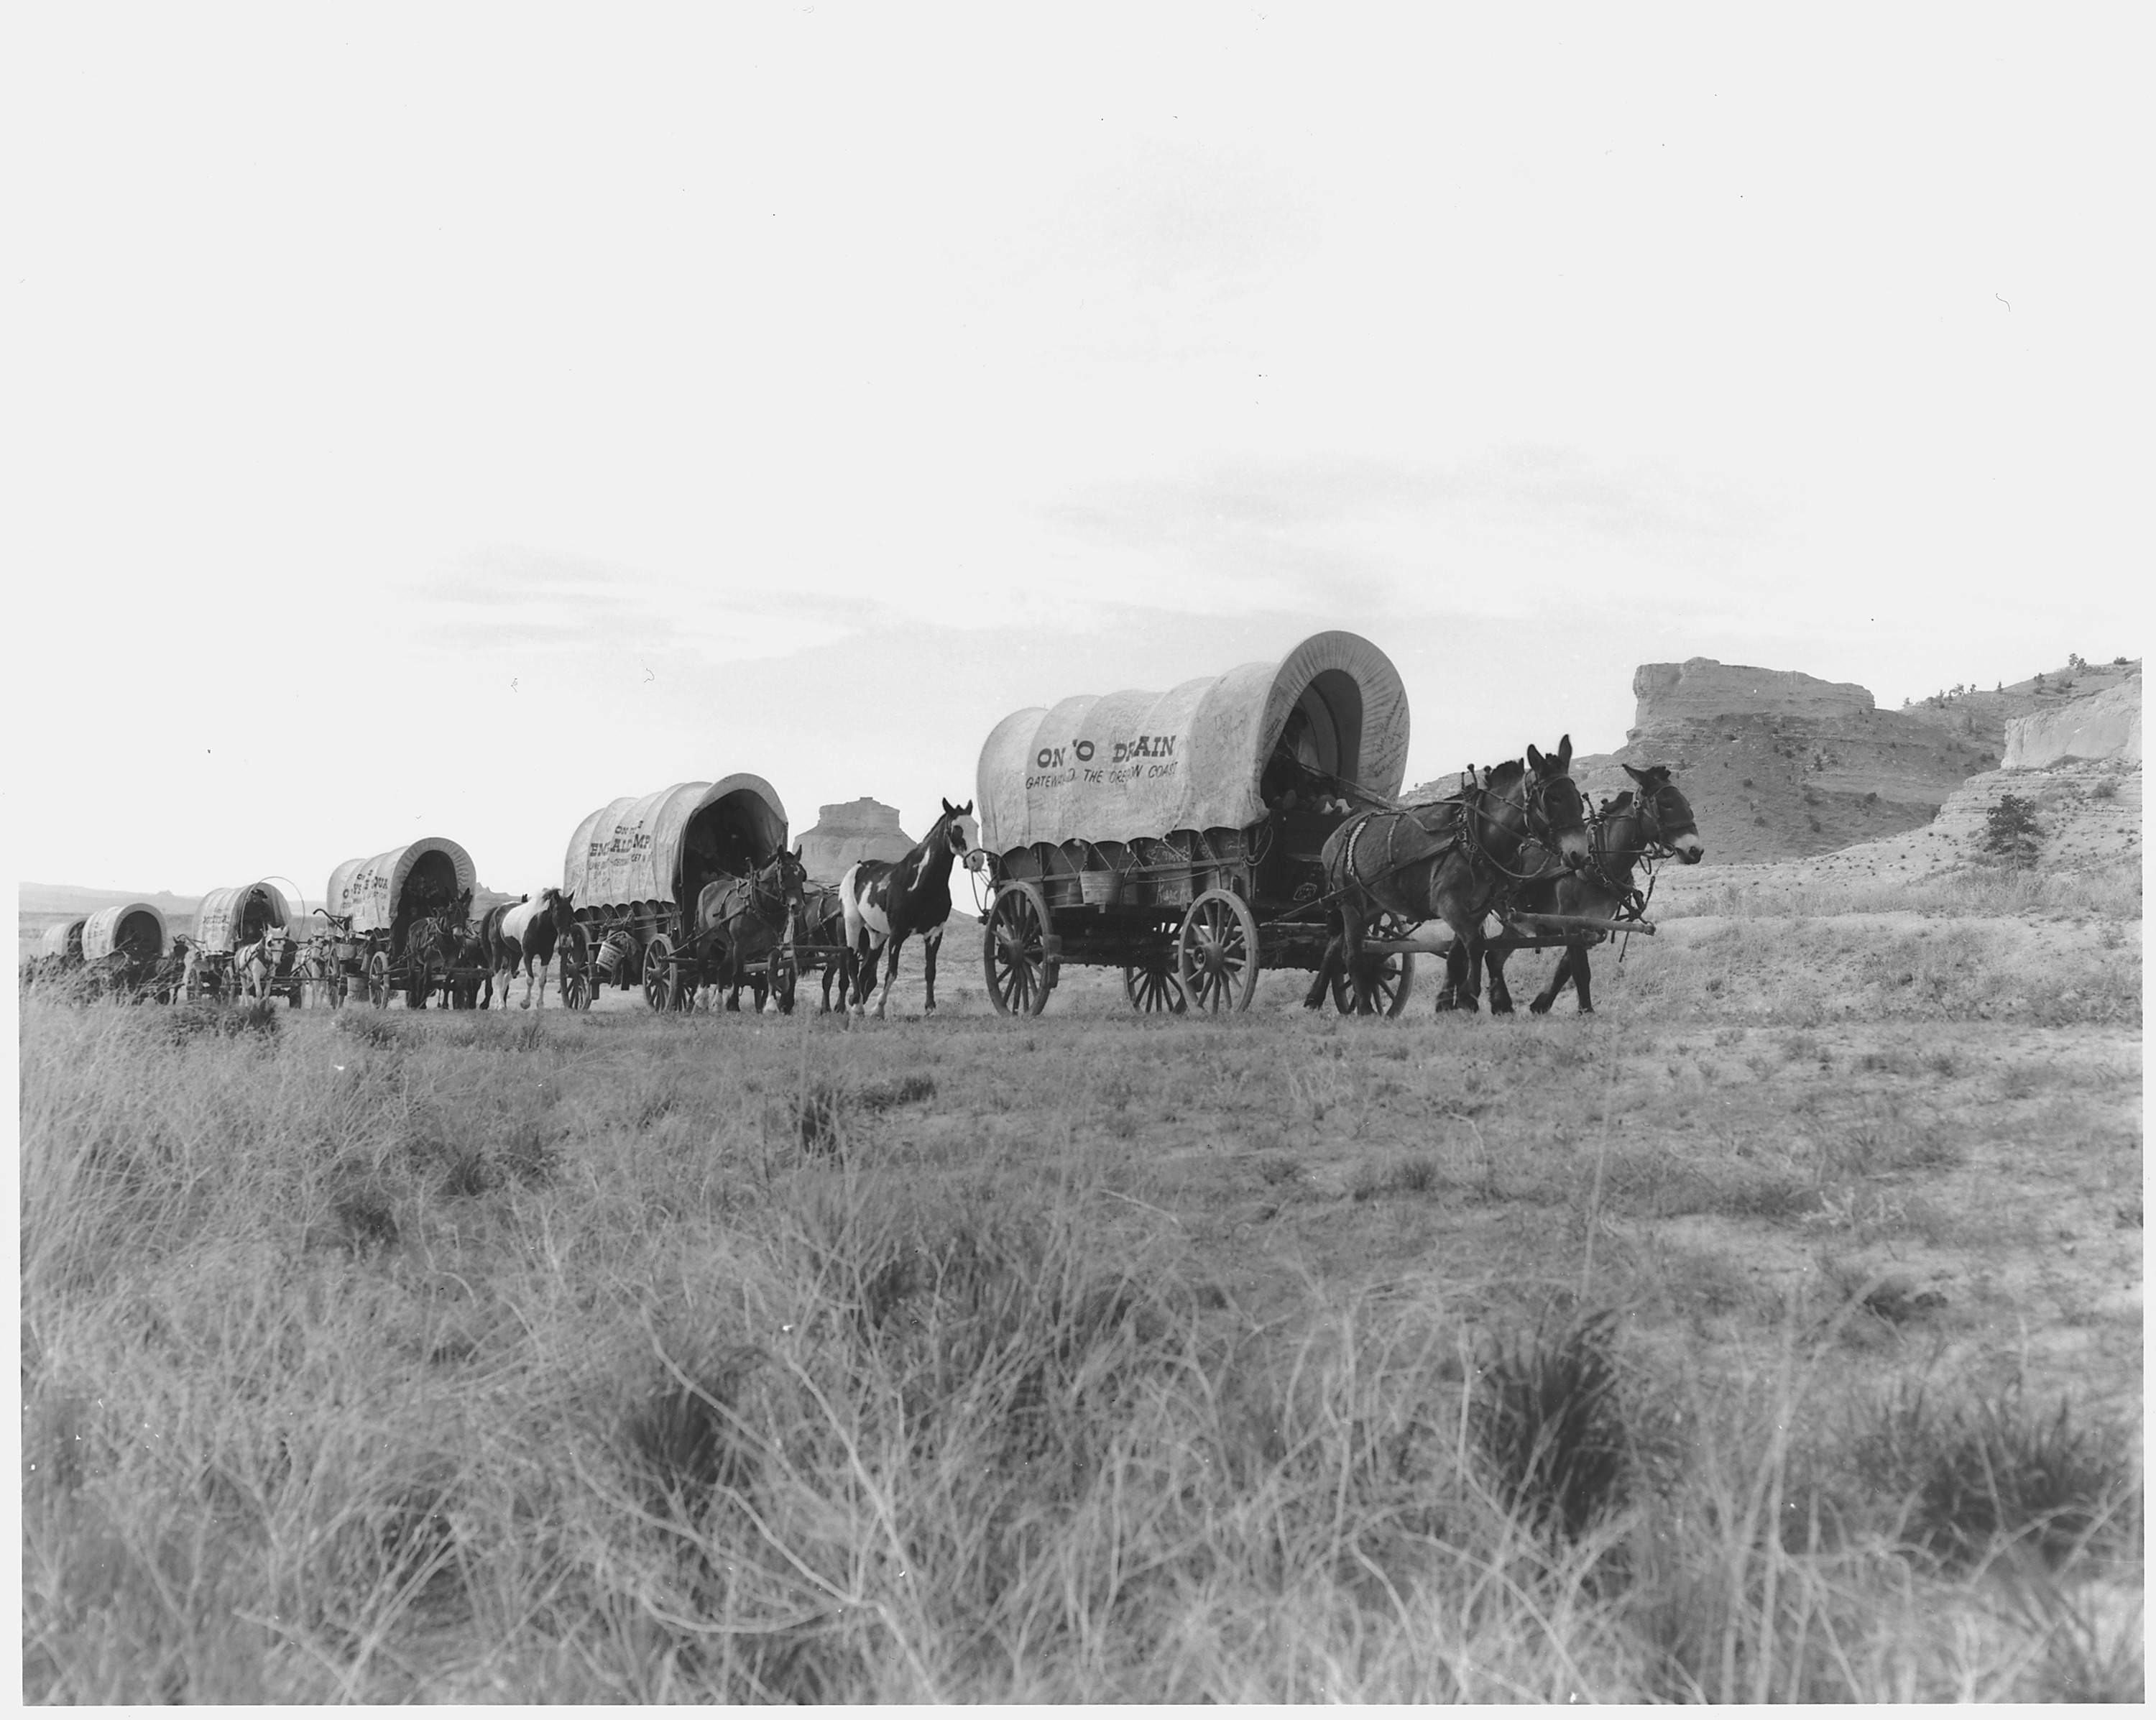 a hitory of the oregon trail The first major wagon train to the northwest departs from elm grove, missouri, on the oregon trailalthough us sovereignty over the oregon territory was not clearly.